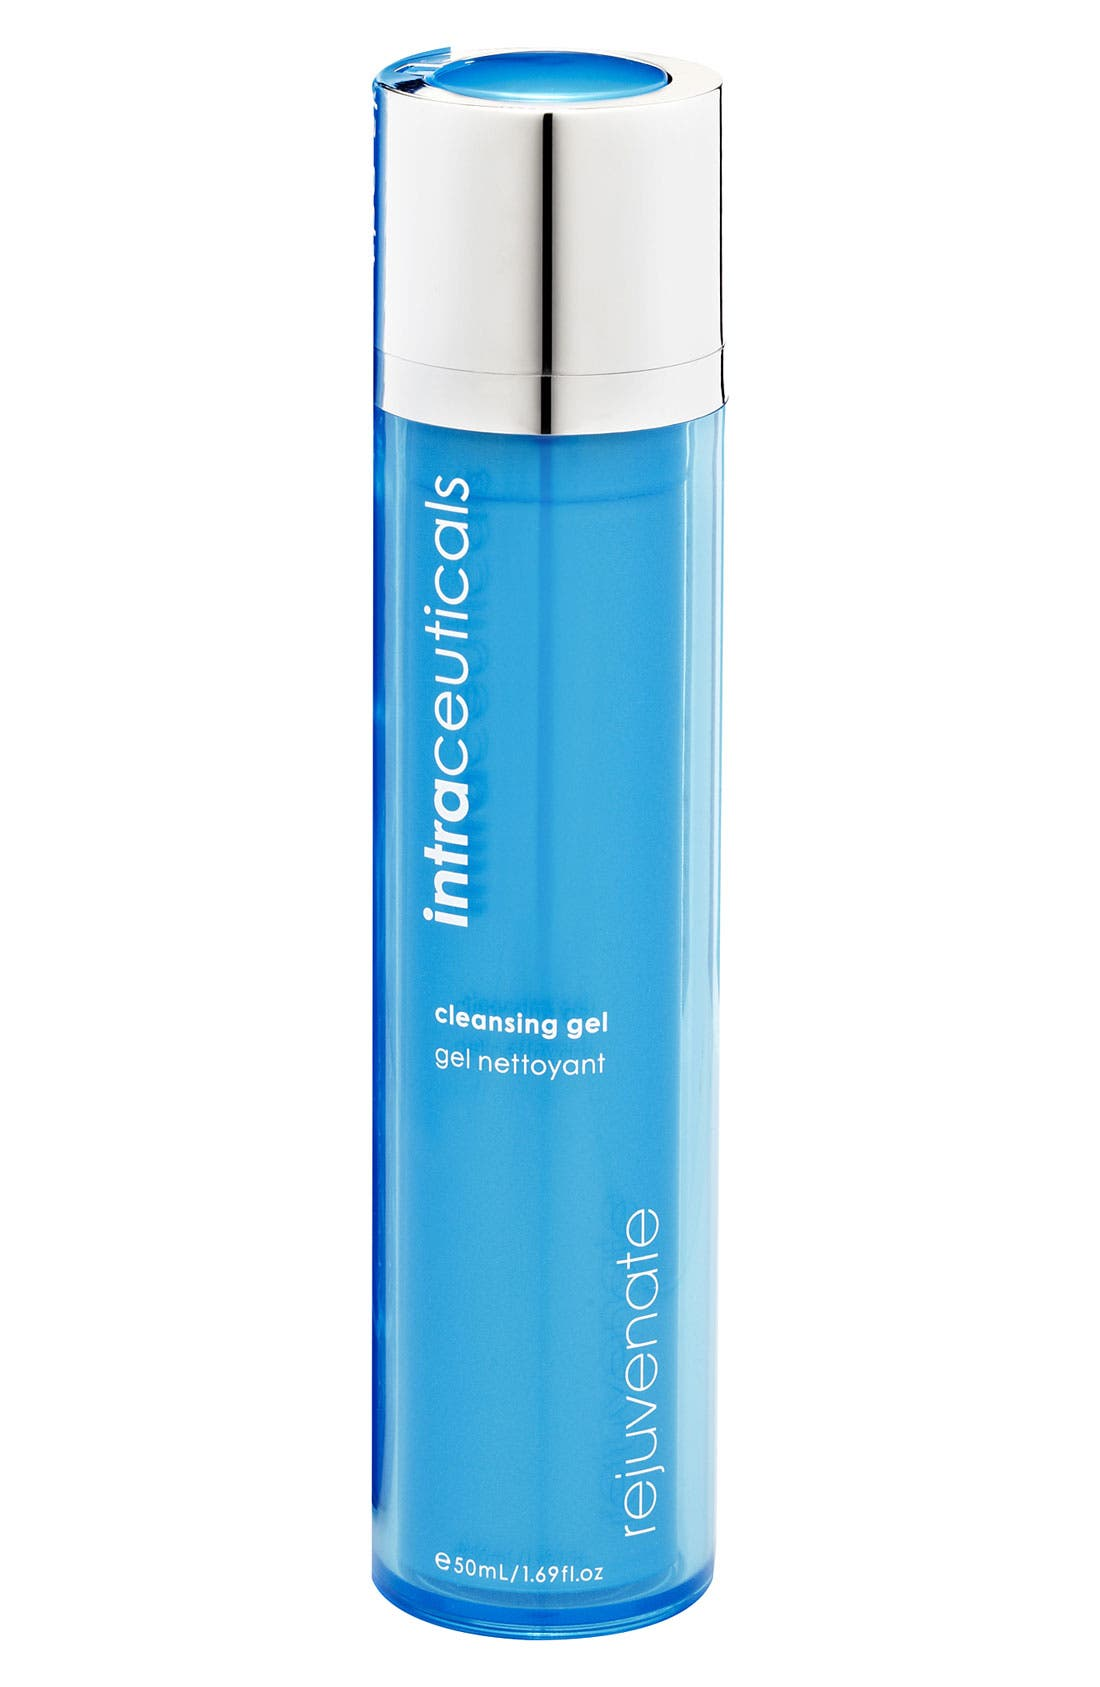 intraceuticals® 'Rejuvenate' Cleansing Gel